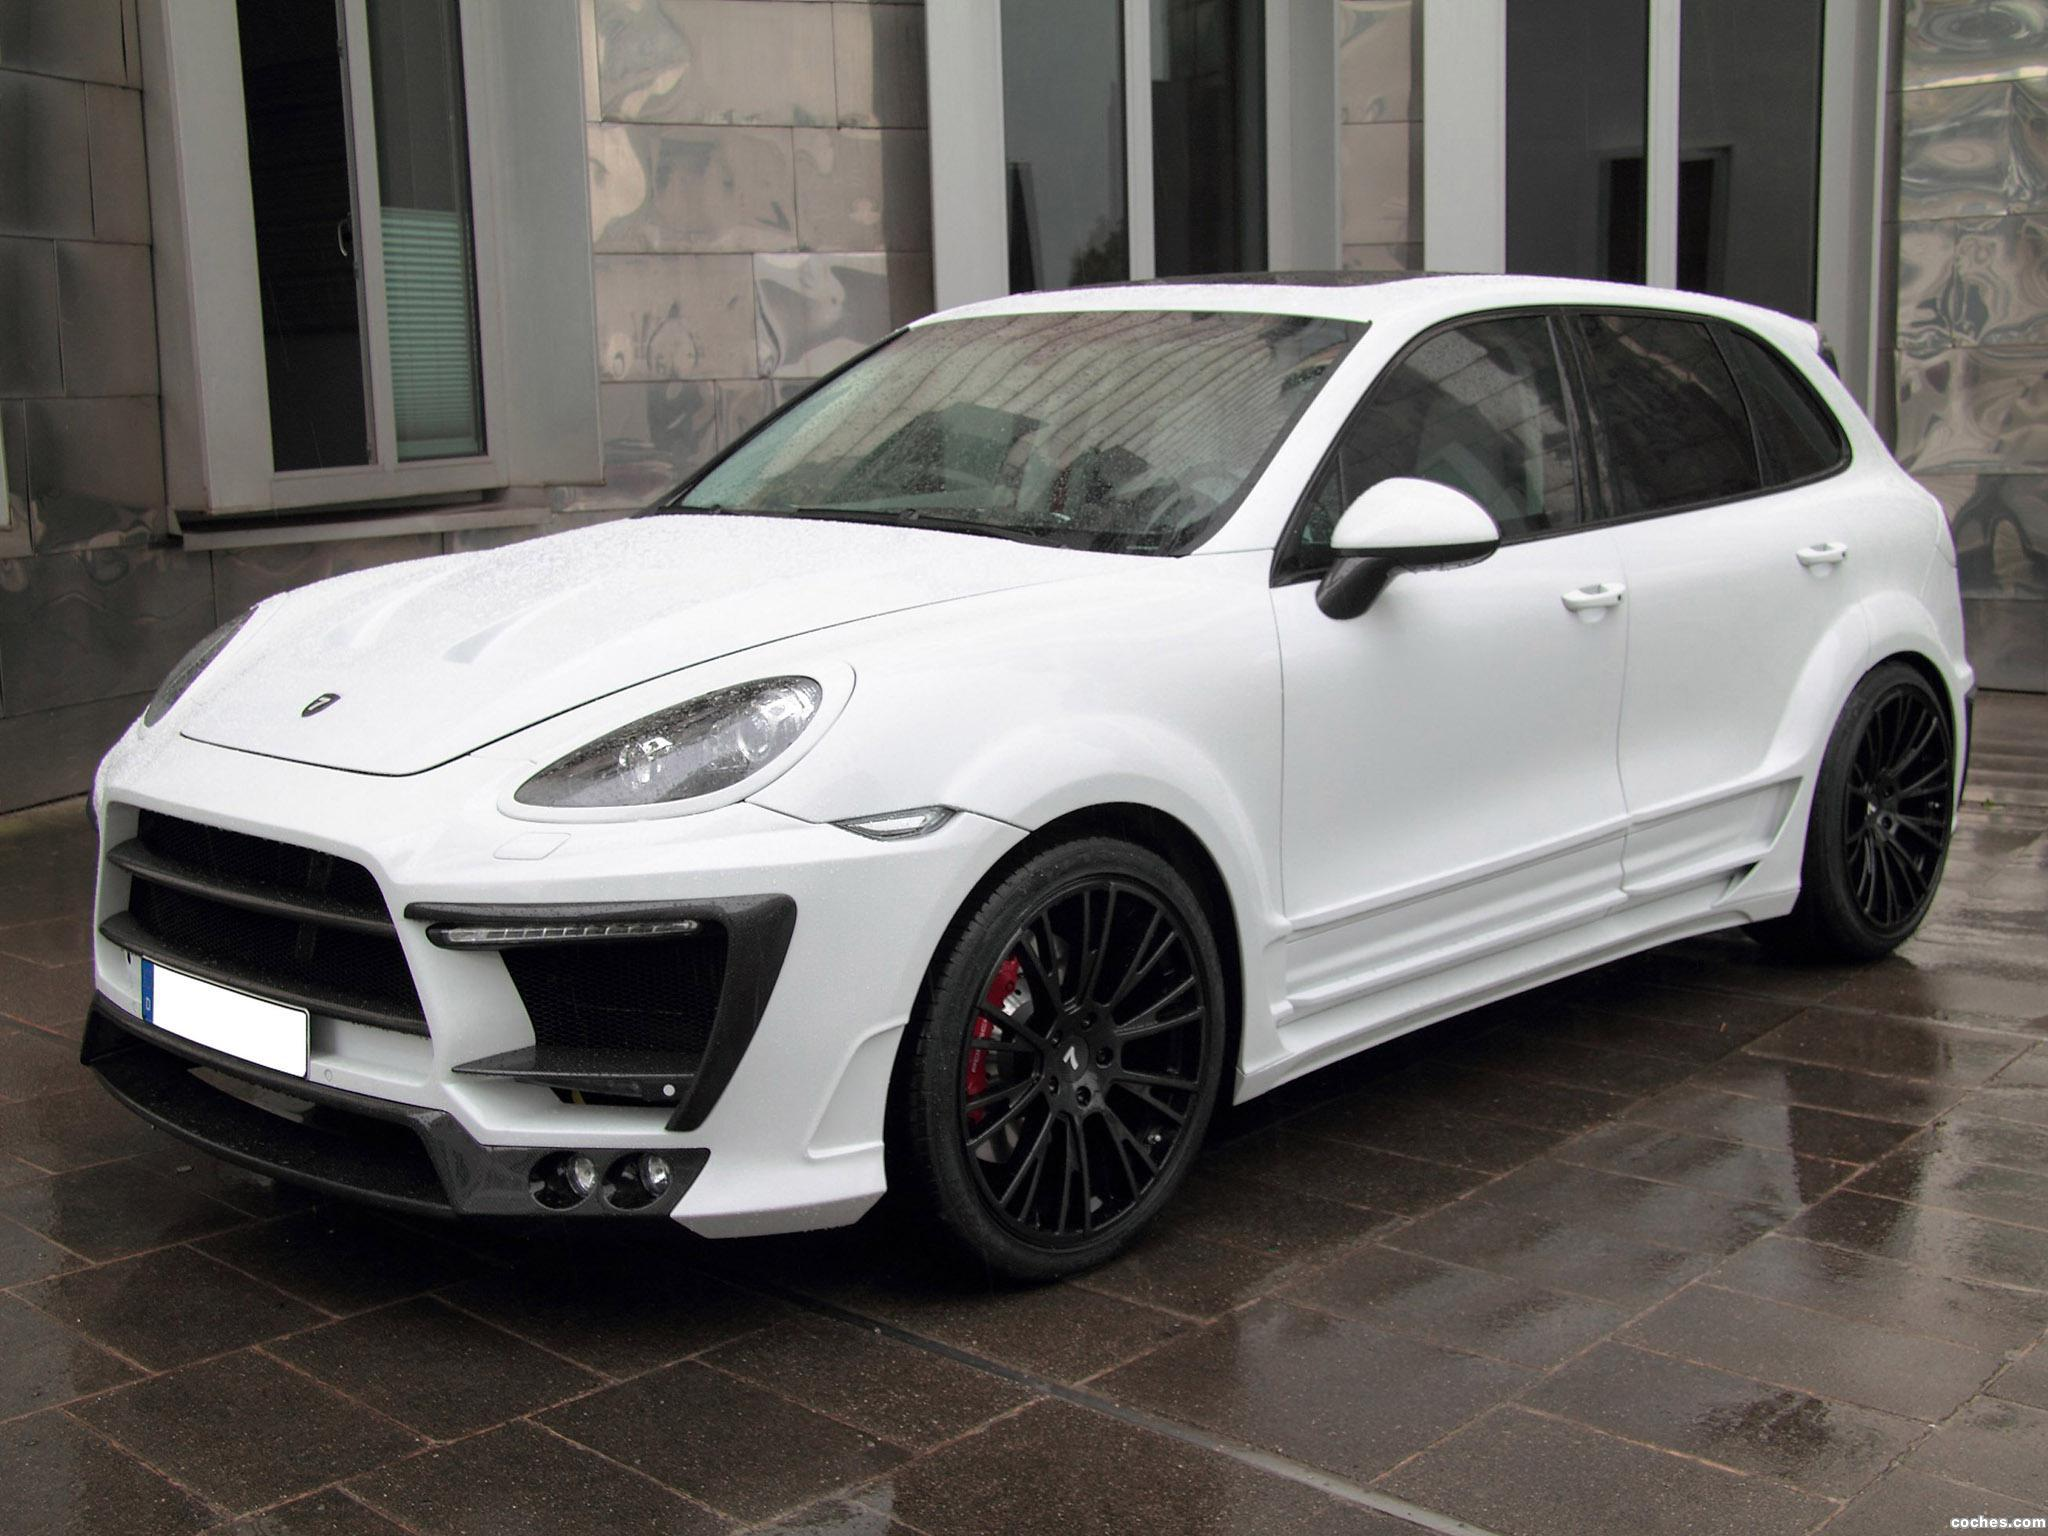 Foto 0 de Porsche Anderson Cayenne White Dream Edition 2013